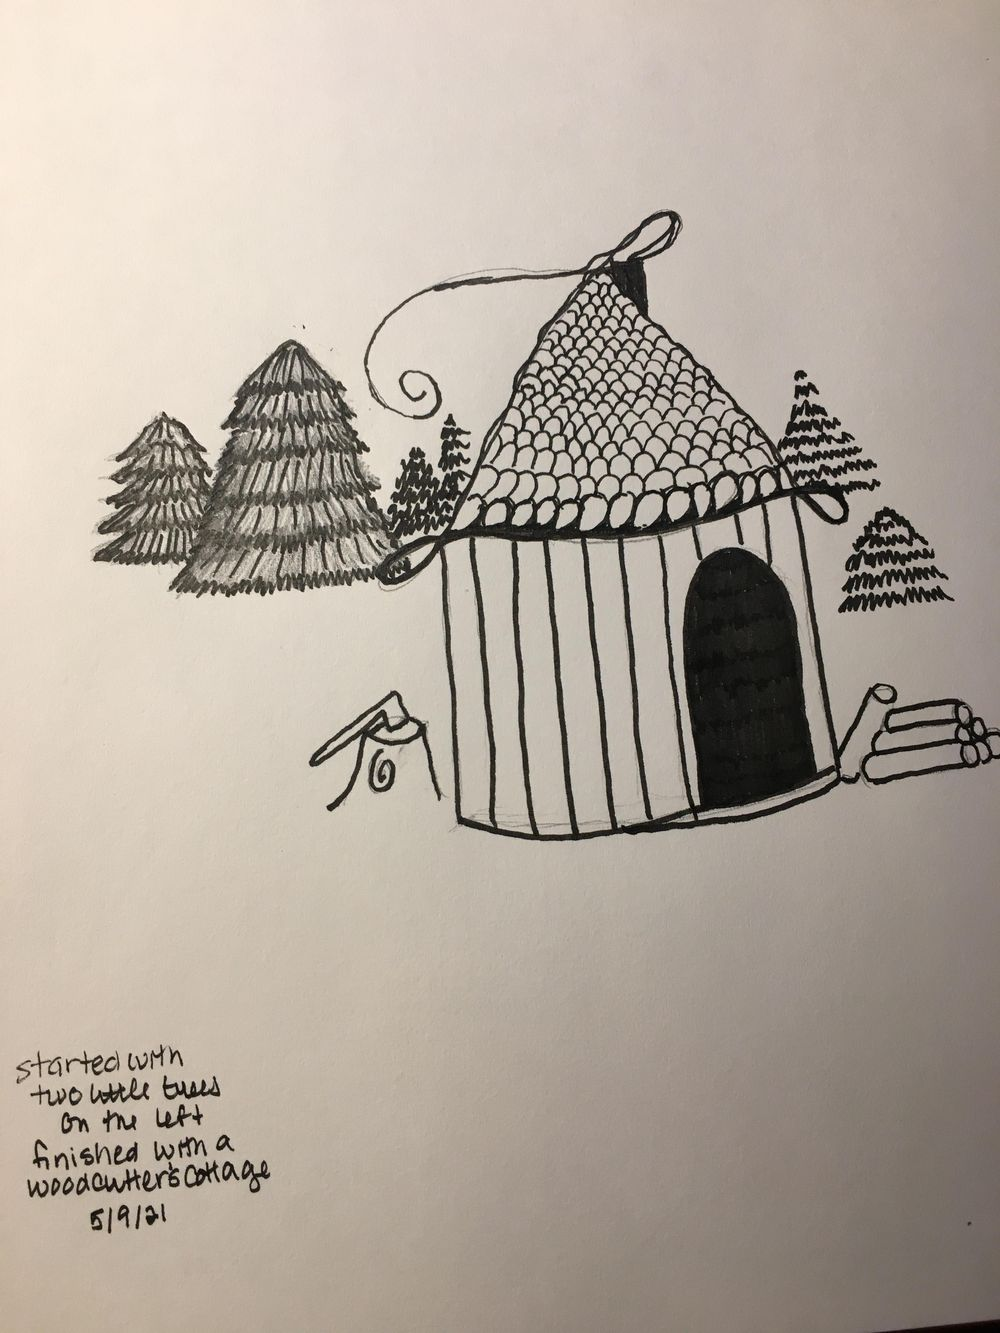 Drawing without fear - image 7 - student project